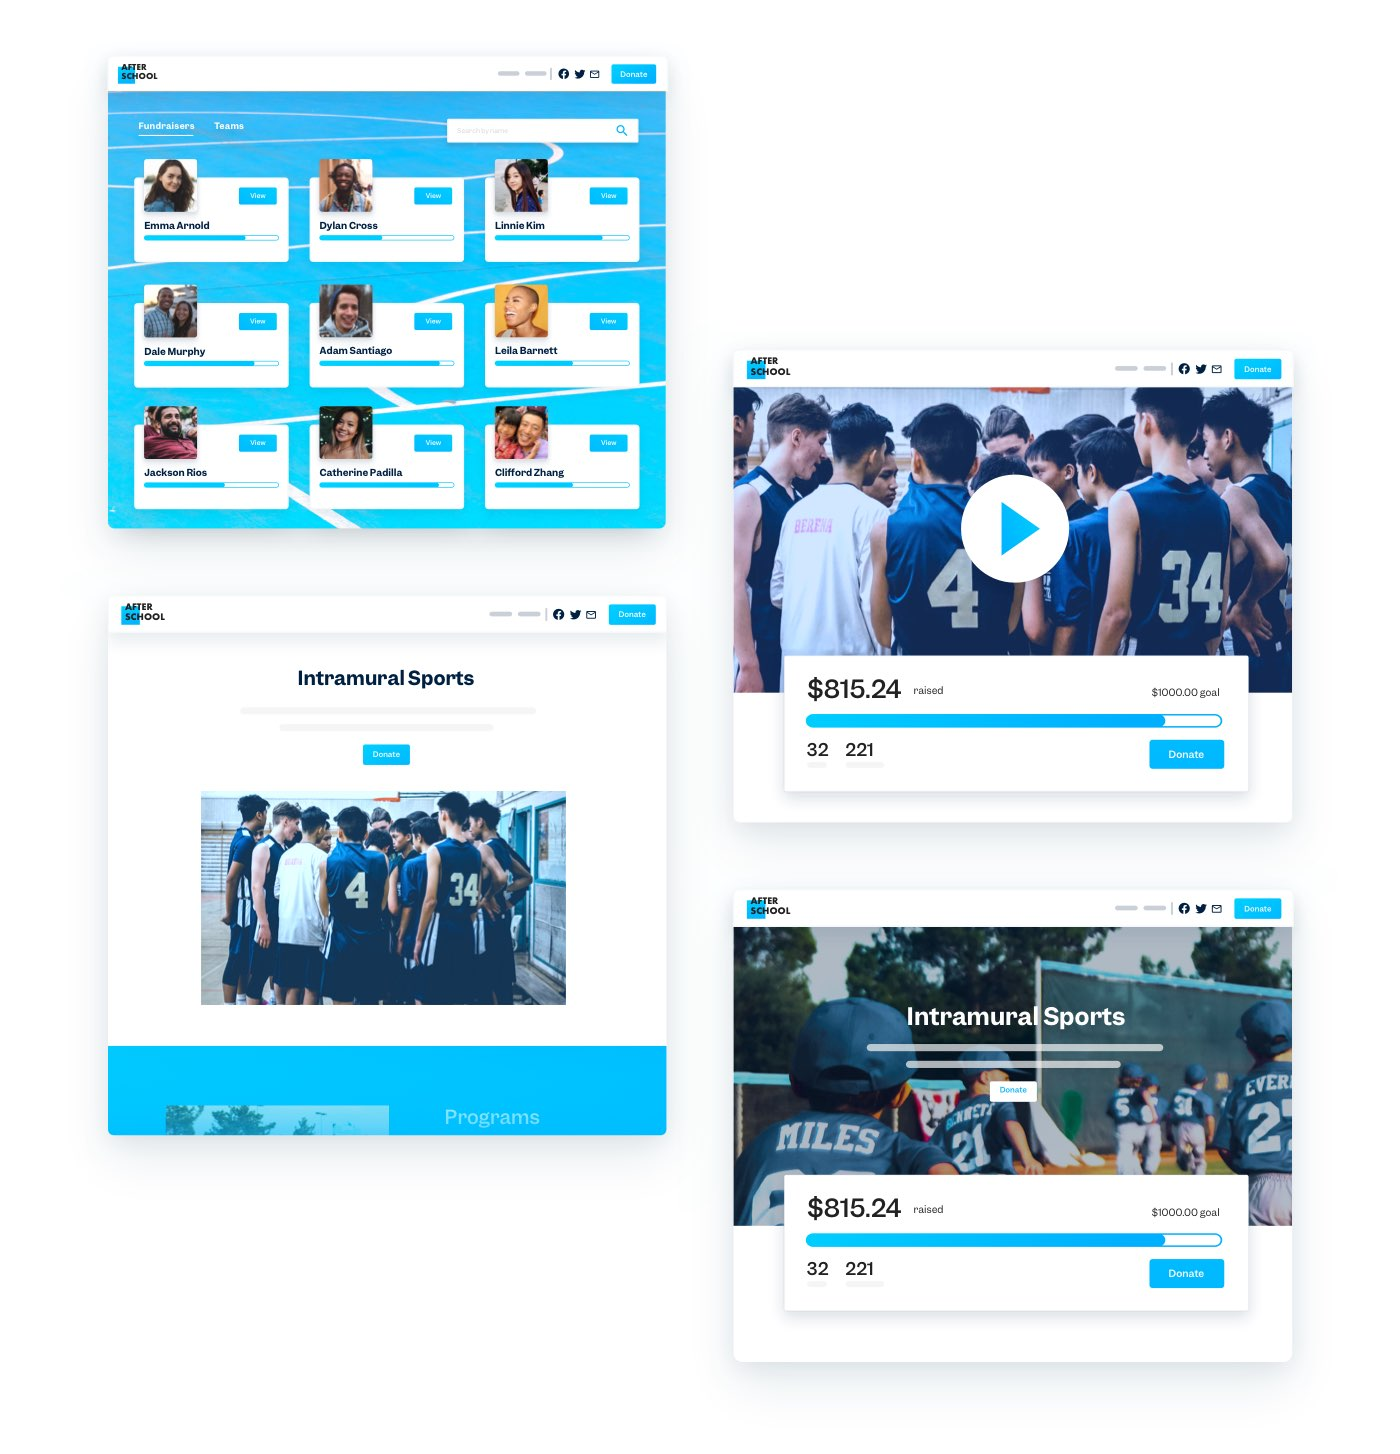 Peer-to-peer fundraising page for a fictional nonprofit named After School. On a blue background, there are nine team sections, each with a headshot.